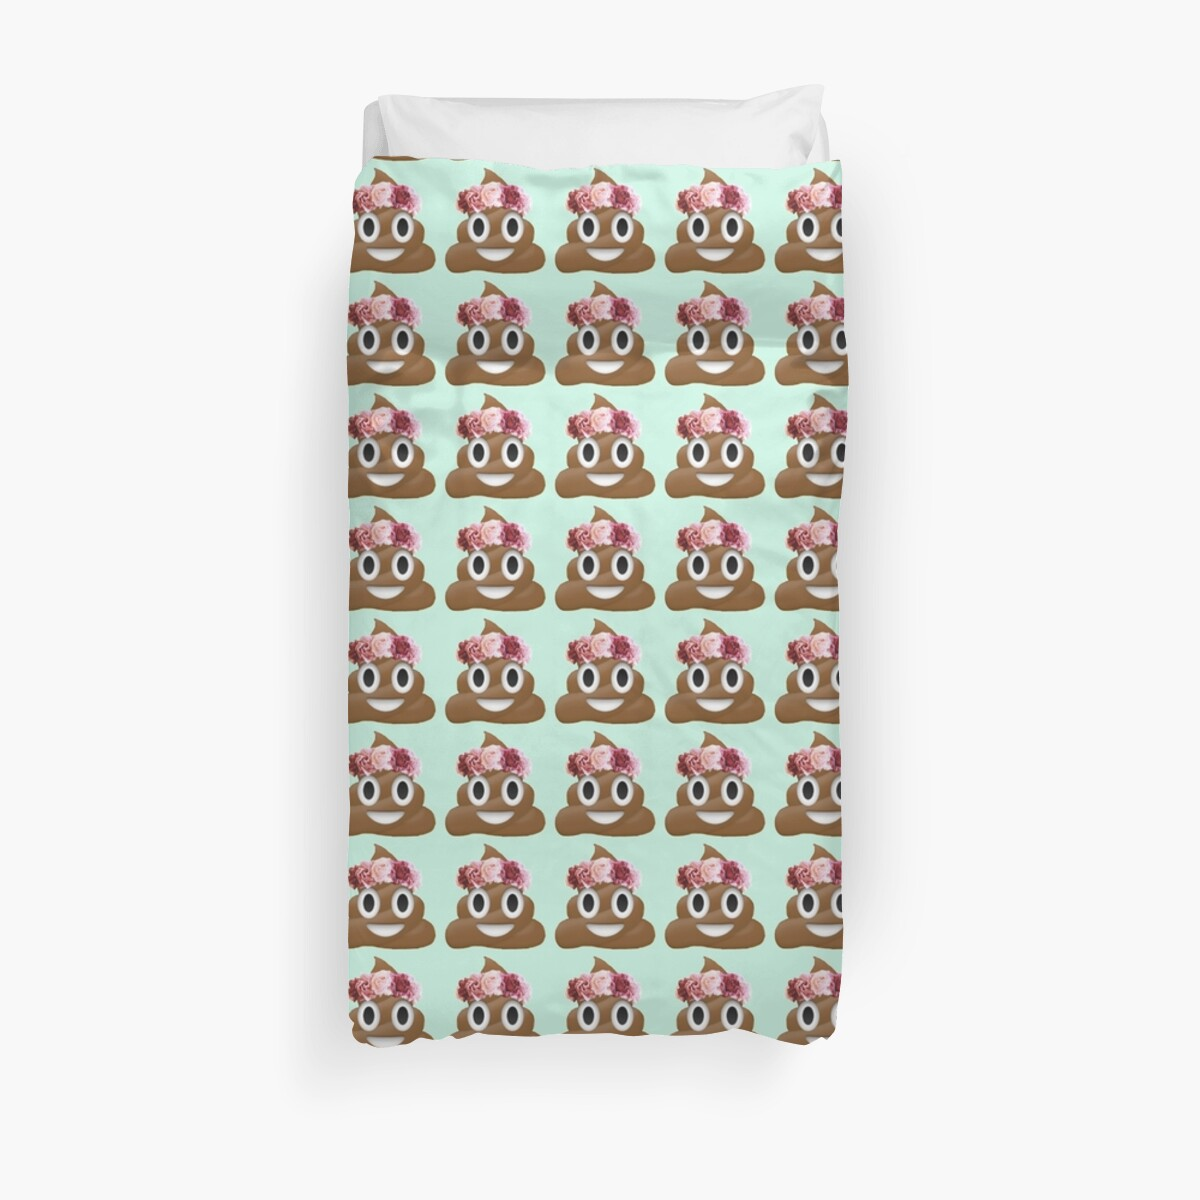 Quot Flower Crown Poop Emoji Hipster Tumblr Quot Duvet Covers By